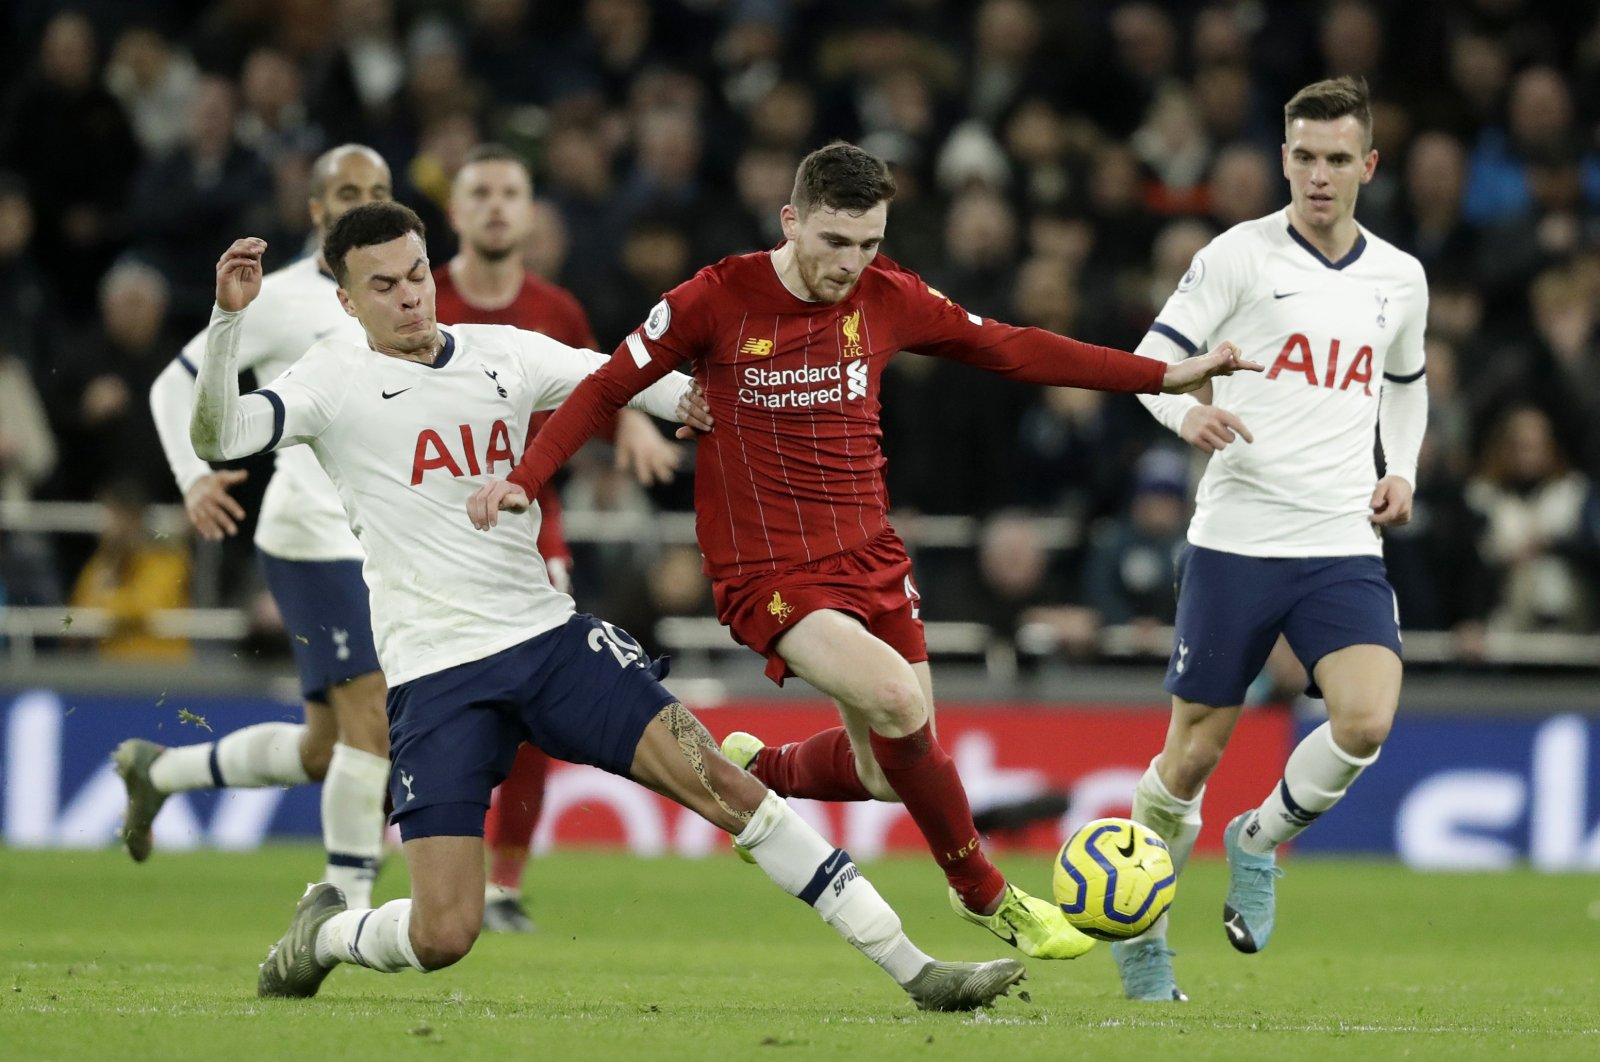 Tottenham's Dele Alli (L) fights for the ball with Liverpool's Andrew Robertson (C) during a Premier League match at the Tottenham Hotspur Stadium in London, England, Jan. 11, 2020. (AP Photo)